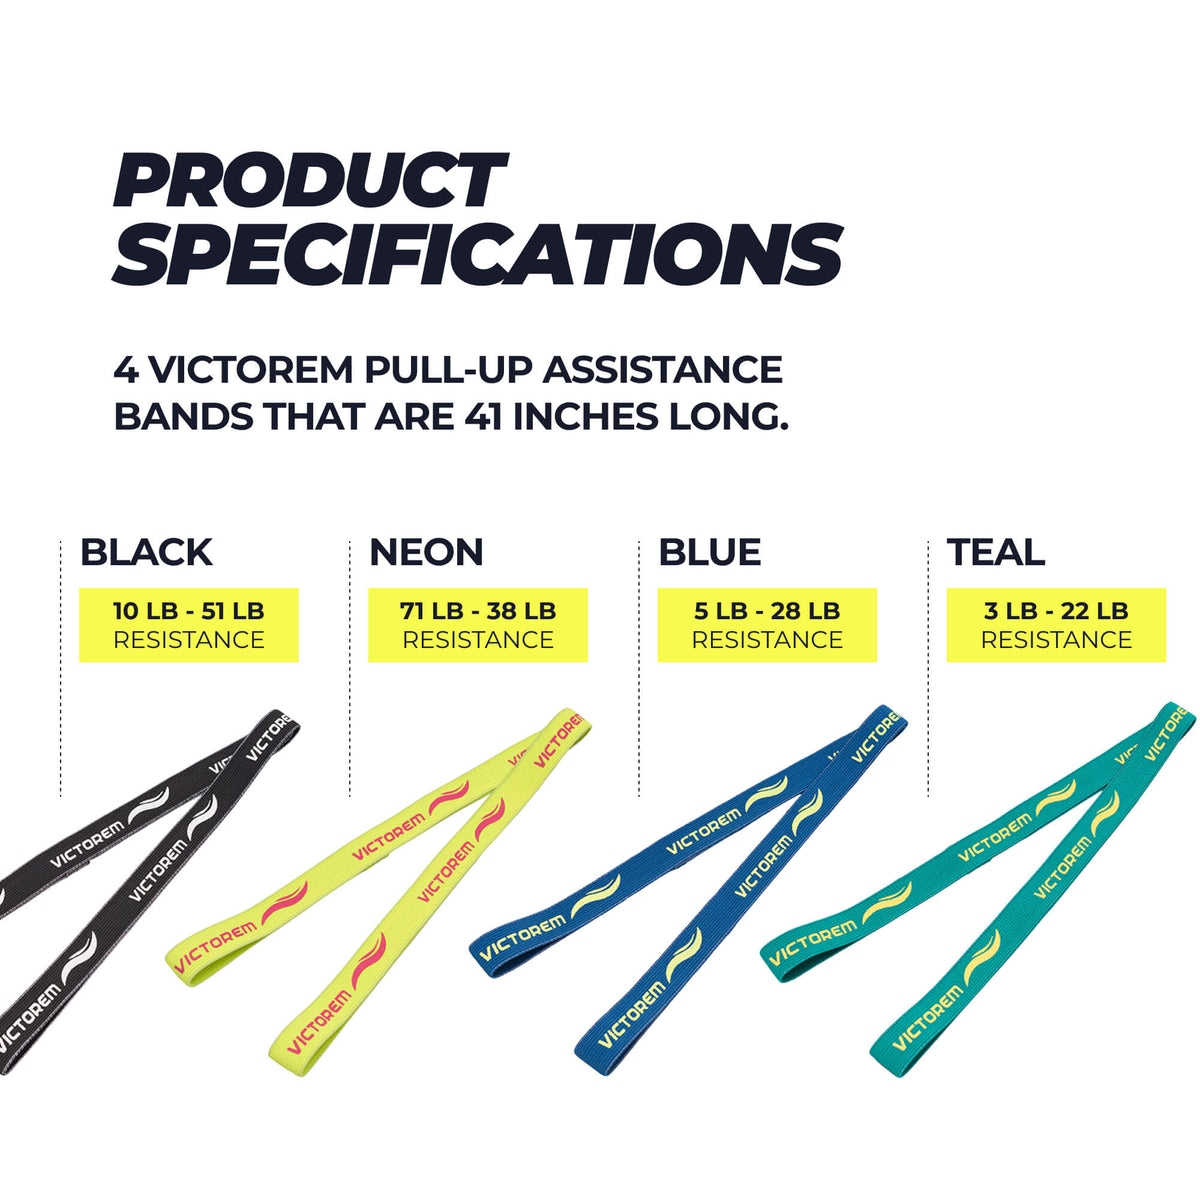 pull-up bands specifications